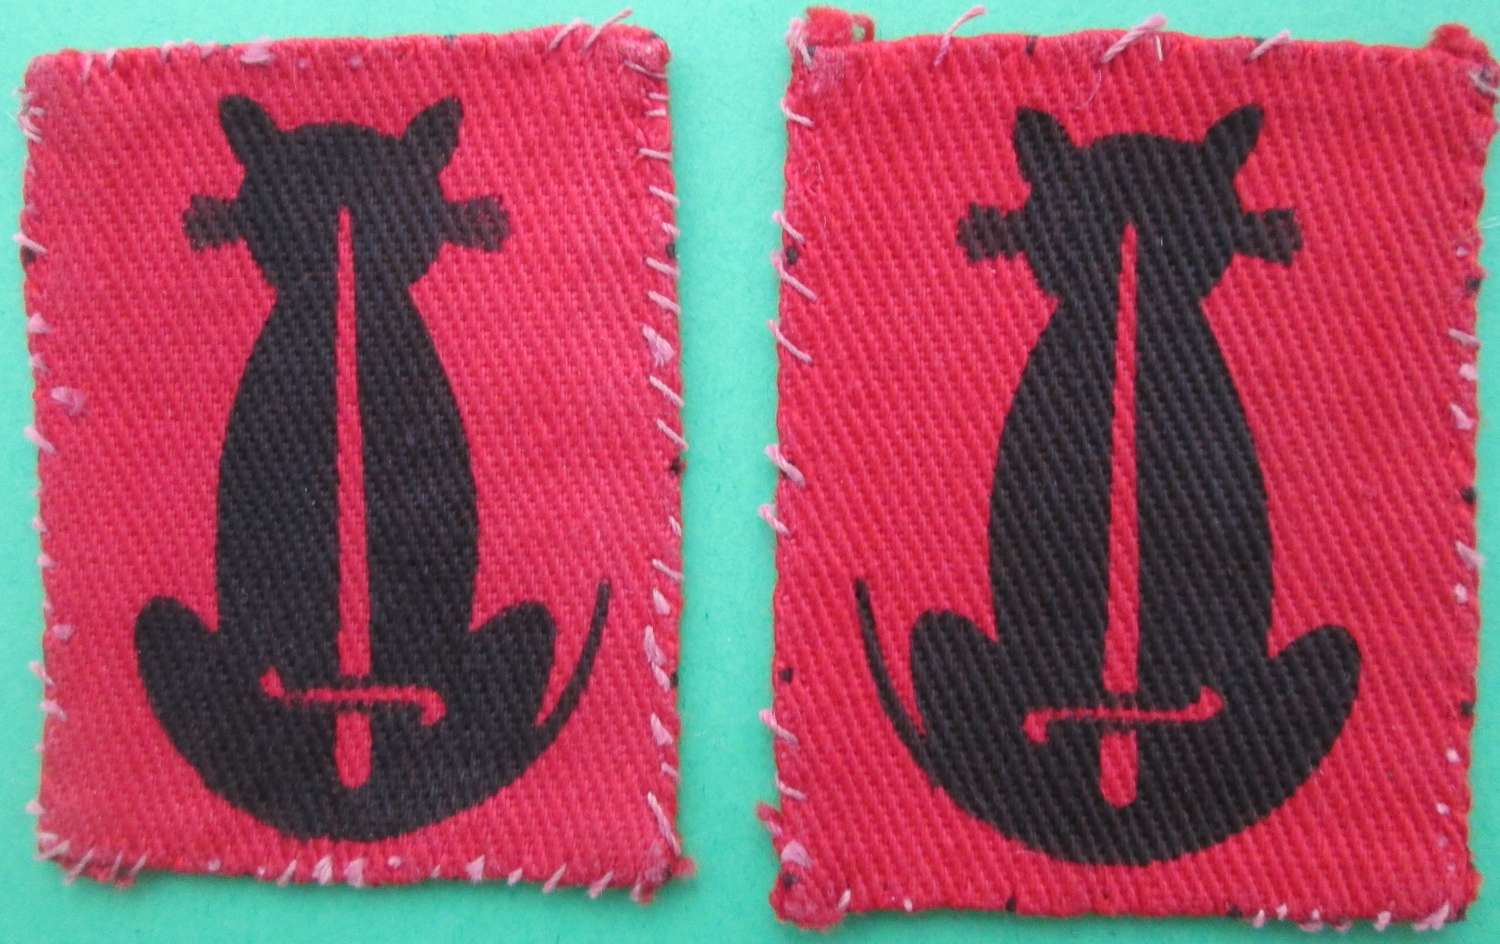 A PAIR OF 56TH (LONDON) ARMOURED DIVISION 2ND PATTERN FORMATION SIGNS